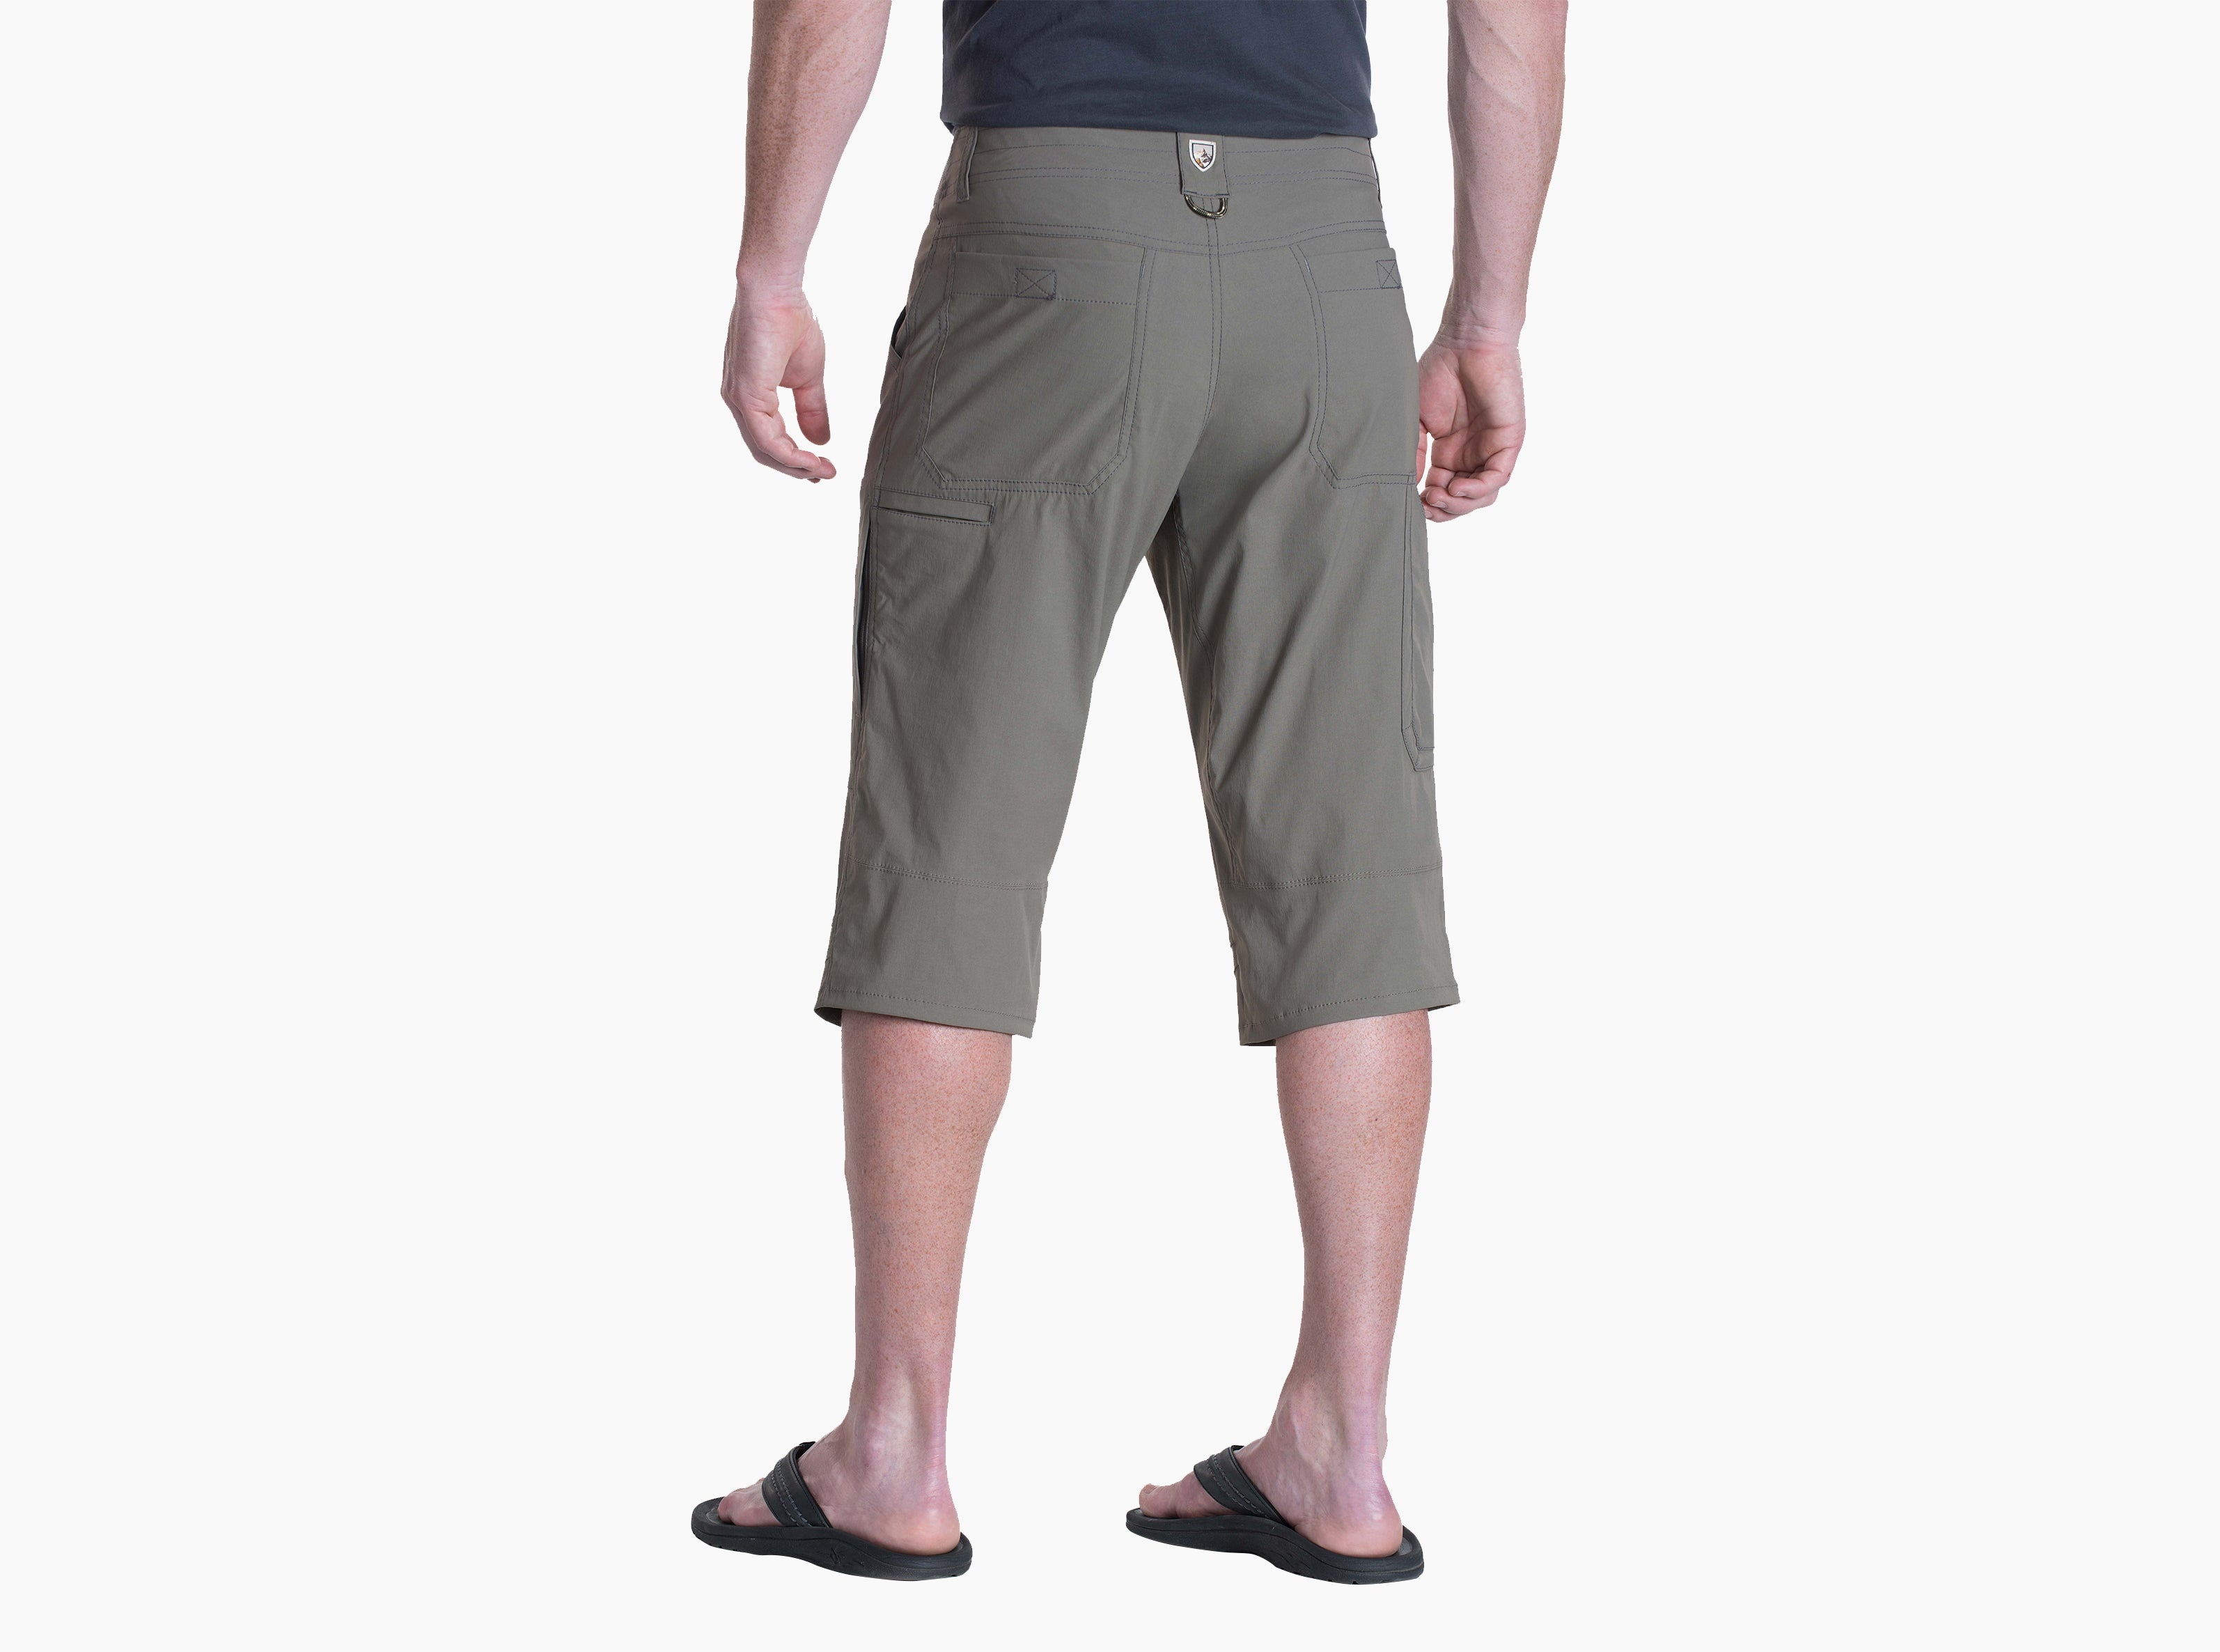 Kuhl Renegade Krux Short for Men in Khaki